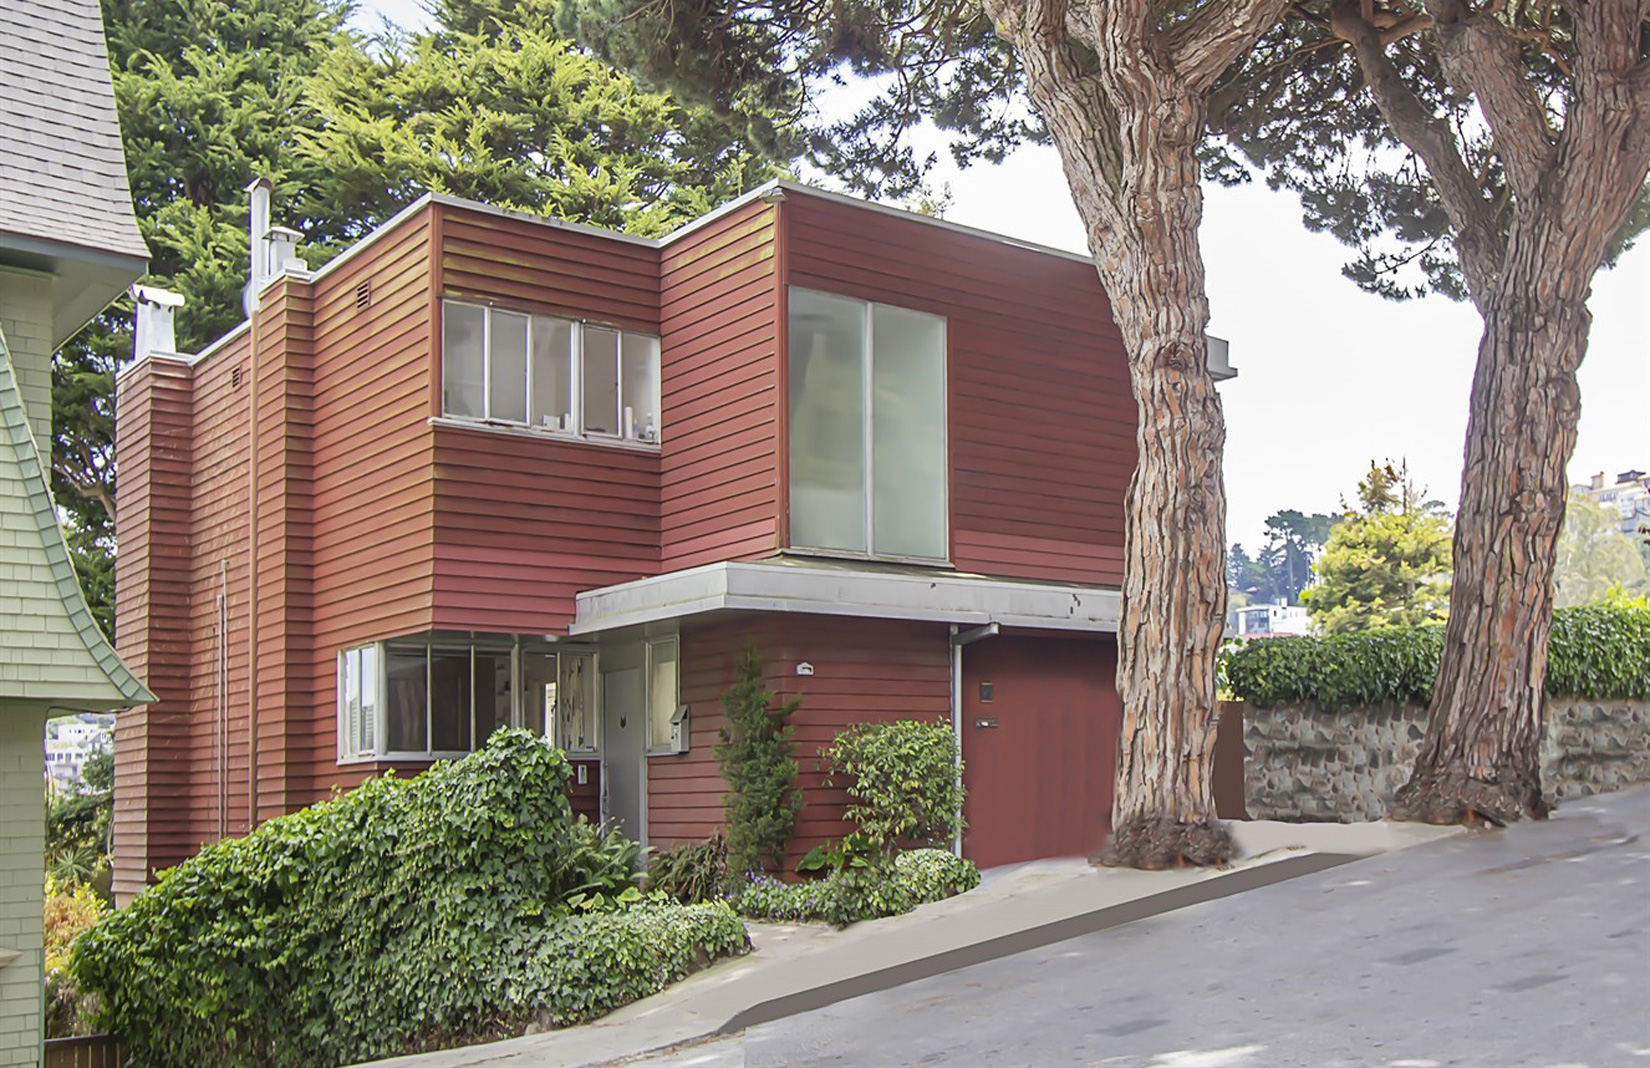 A Richard Neutra house in San Francisco hits the open market for the first time